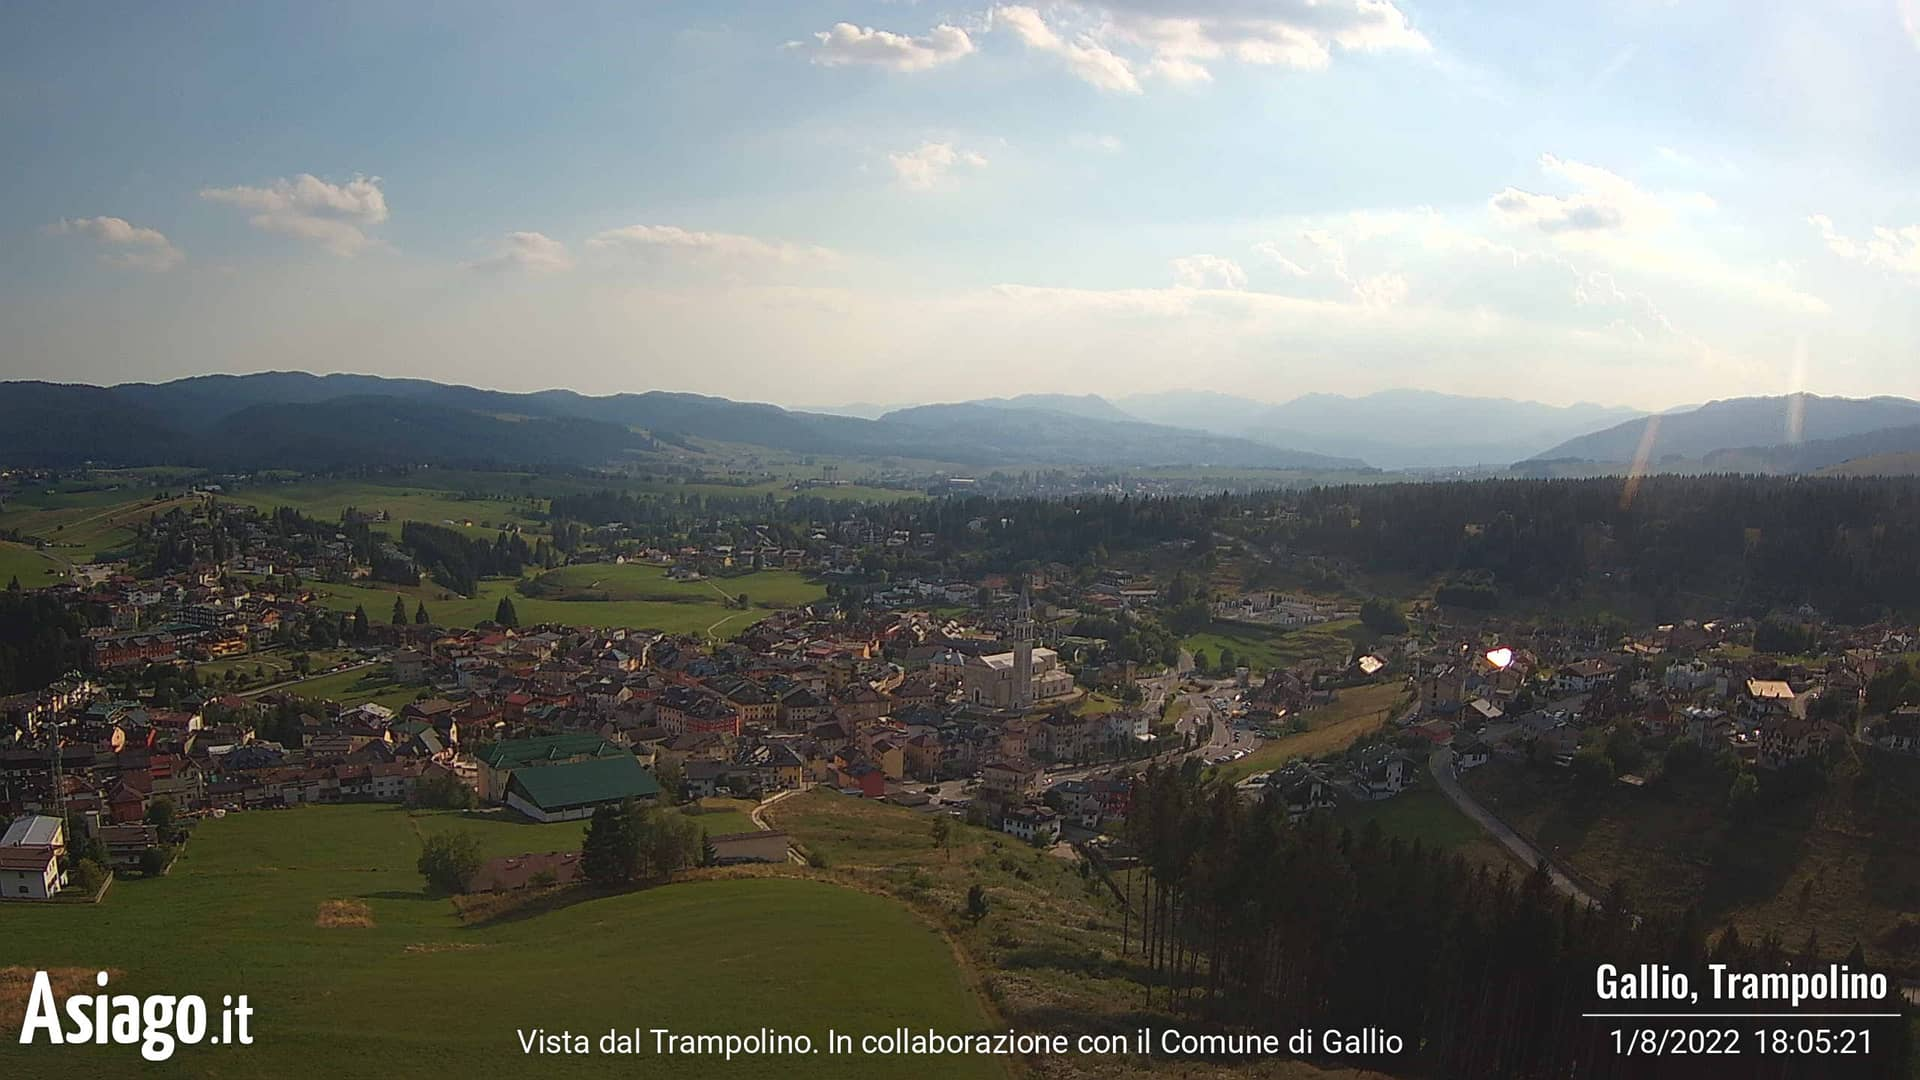 Live Webcams Asiago.It von Gallio Trampolin